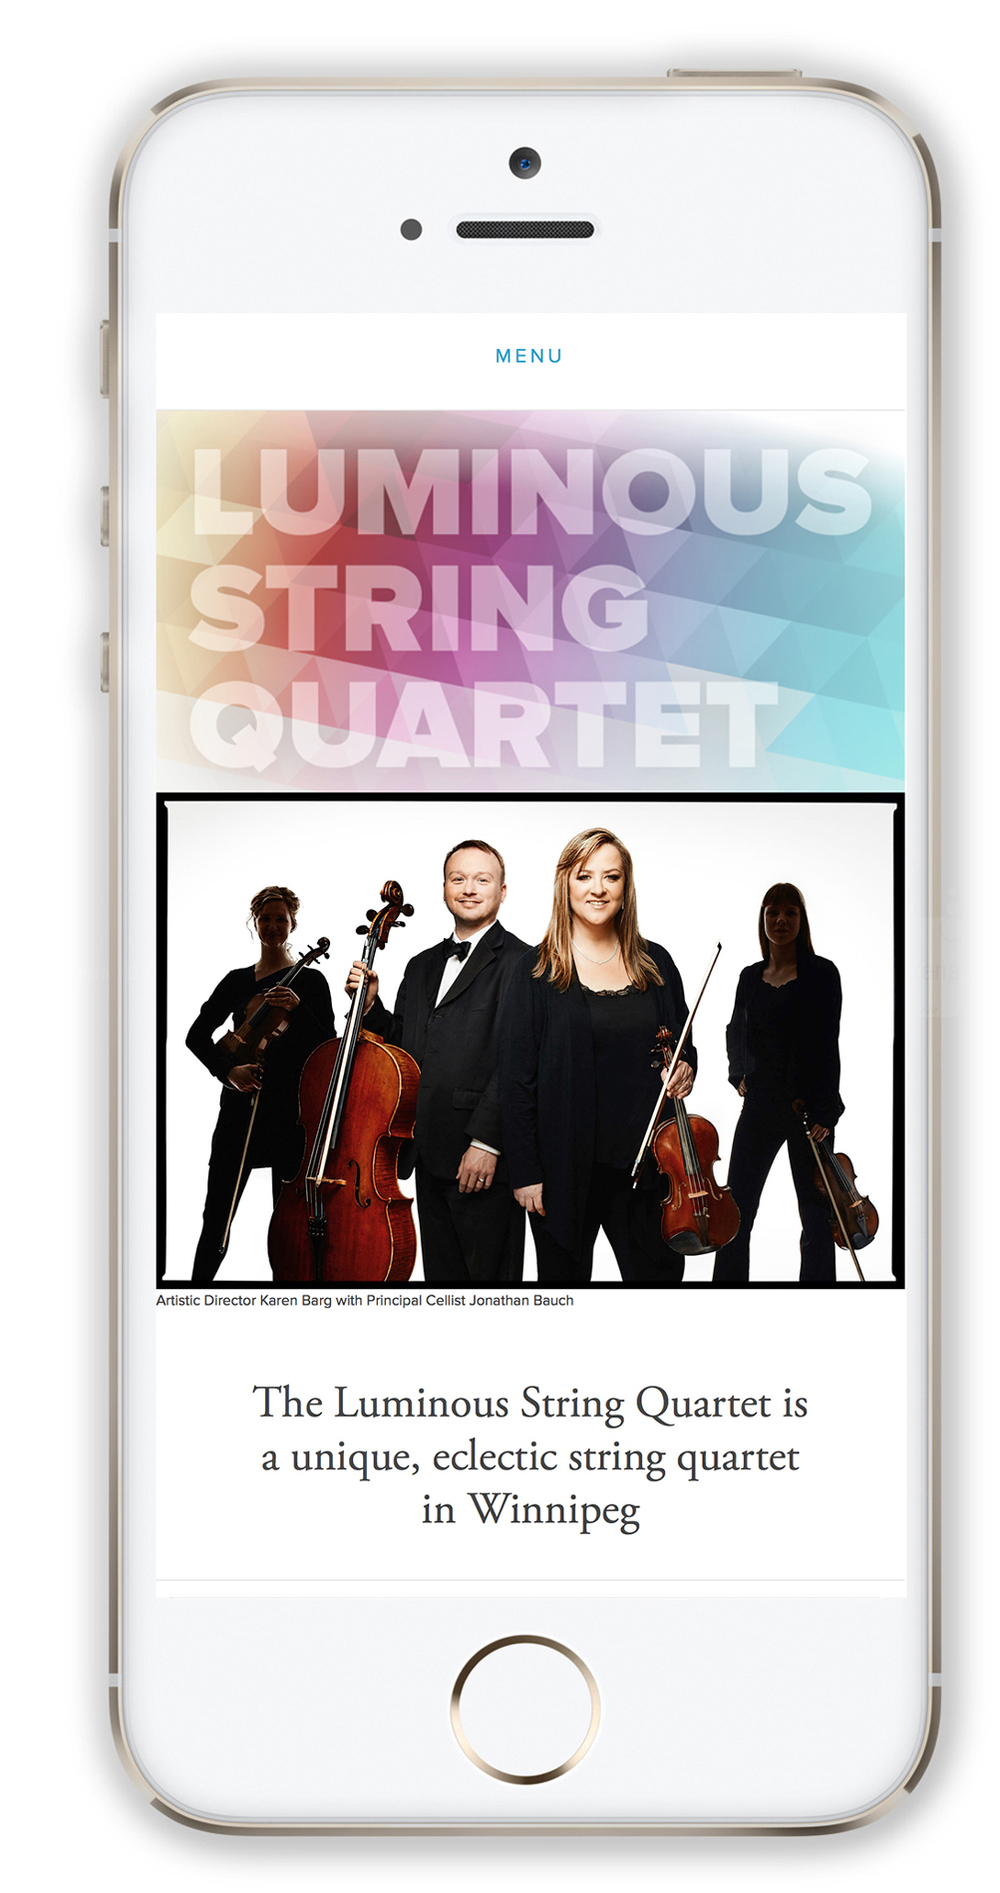 The Luminous String Quartet web site works beautifully on mobile devices, iPads and computers.